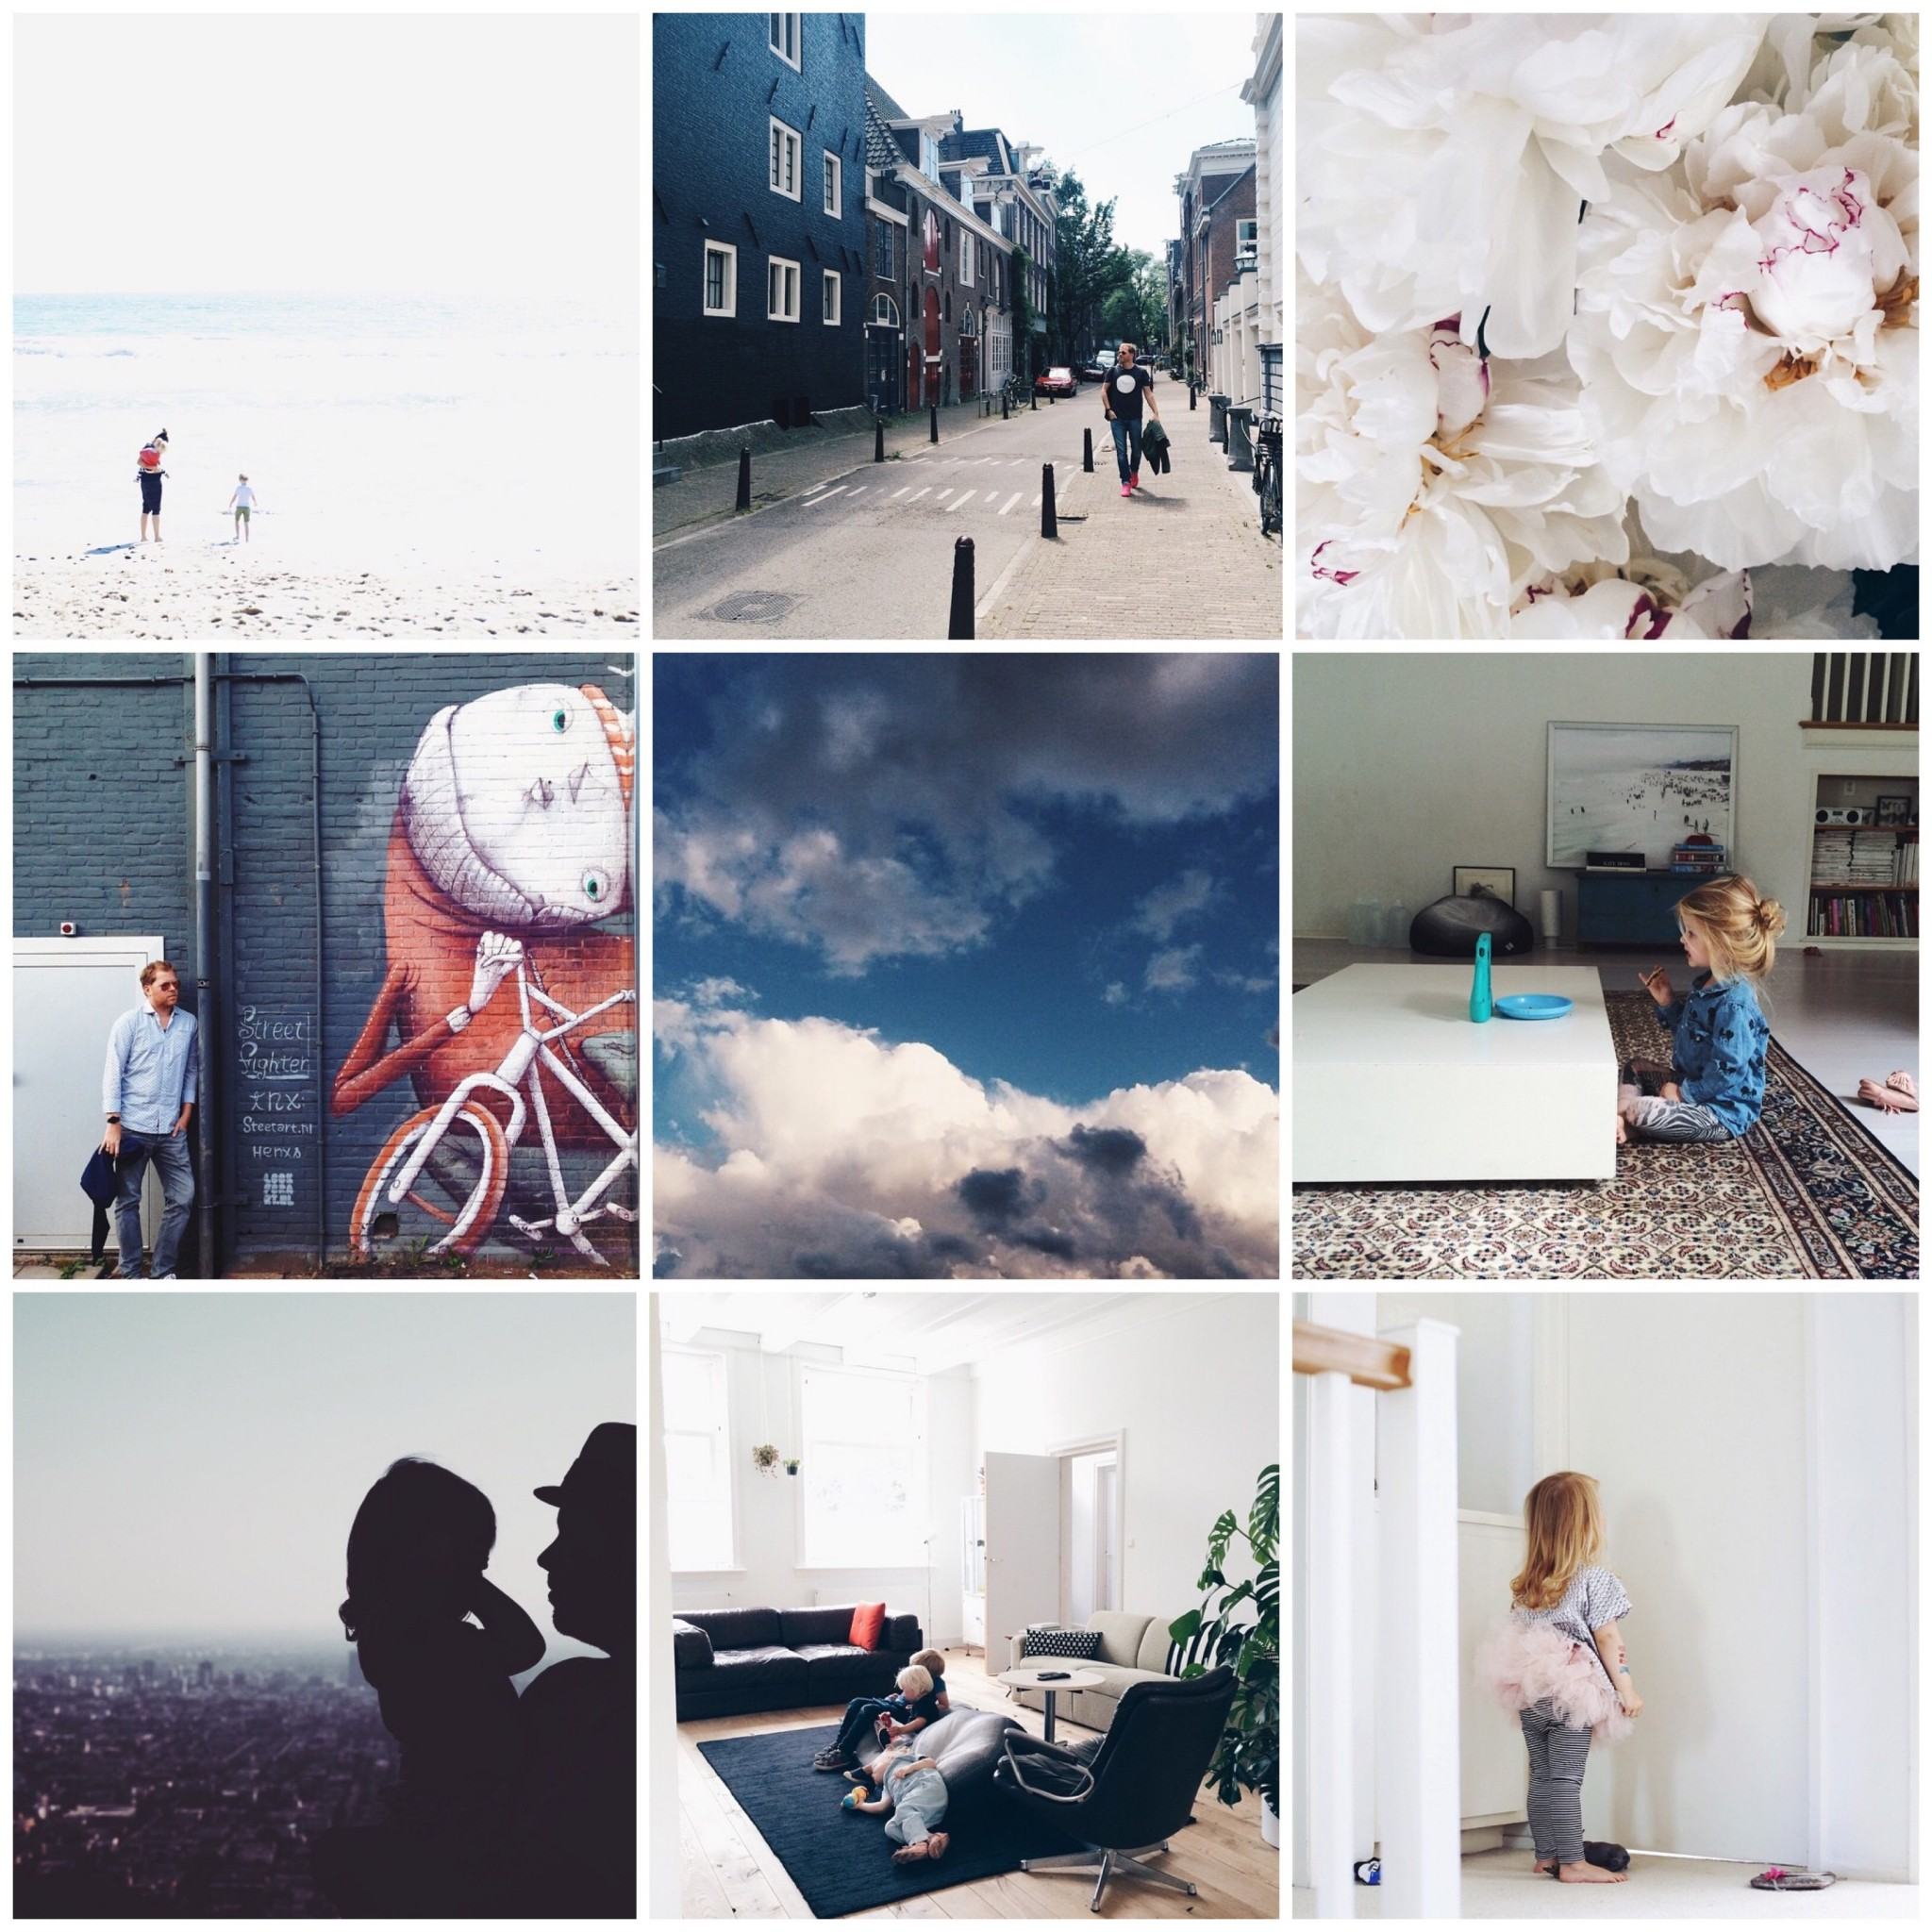 June on instagram @madebylon